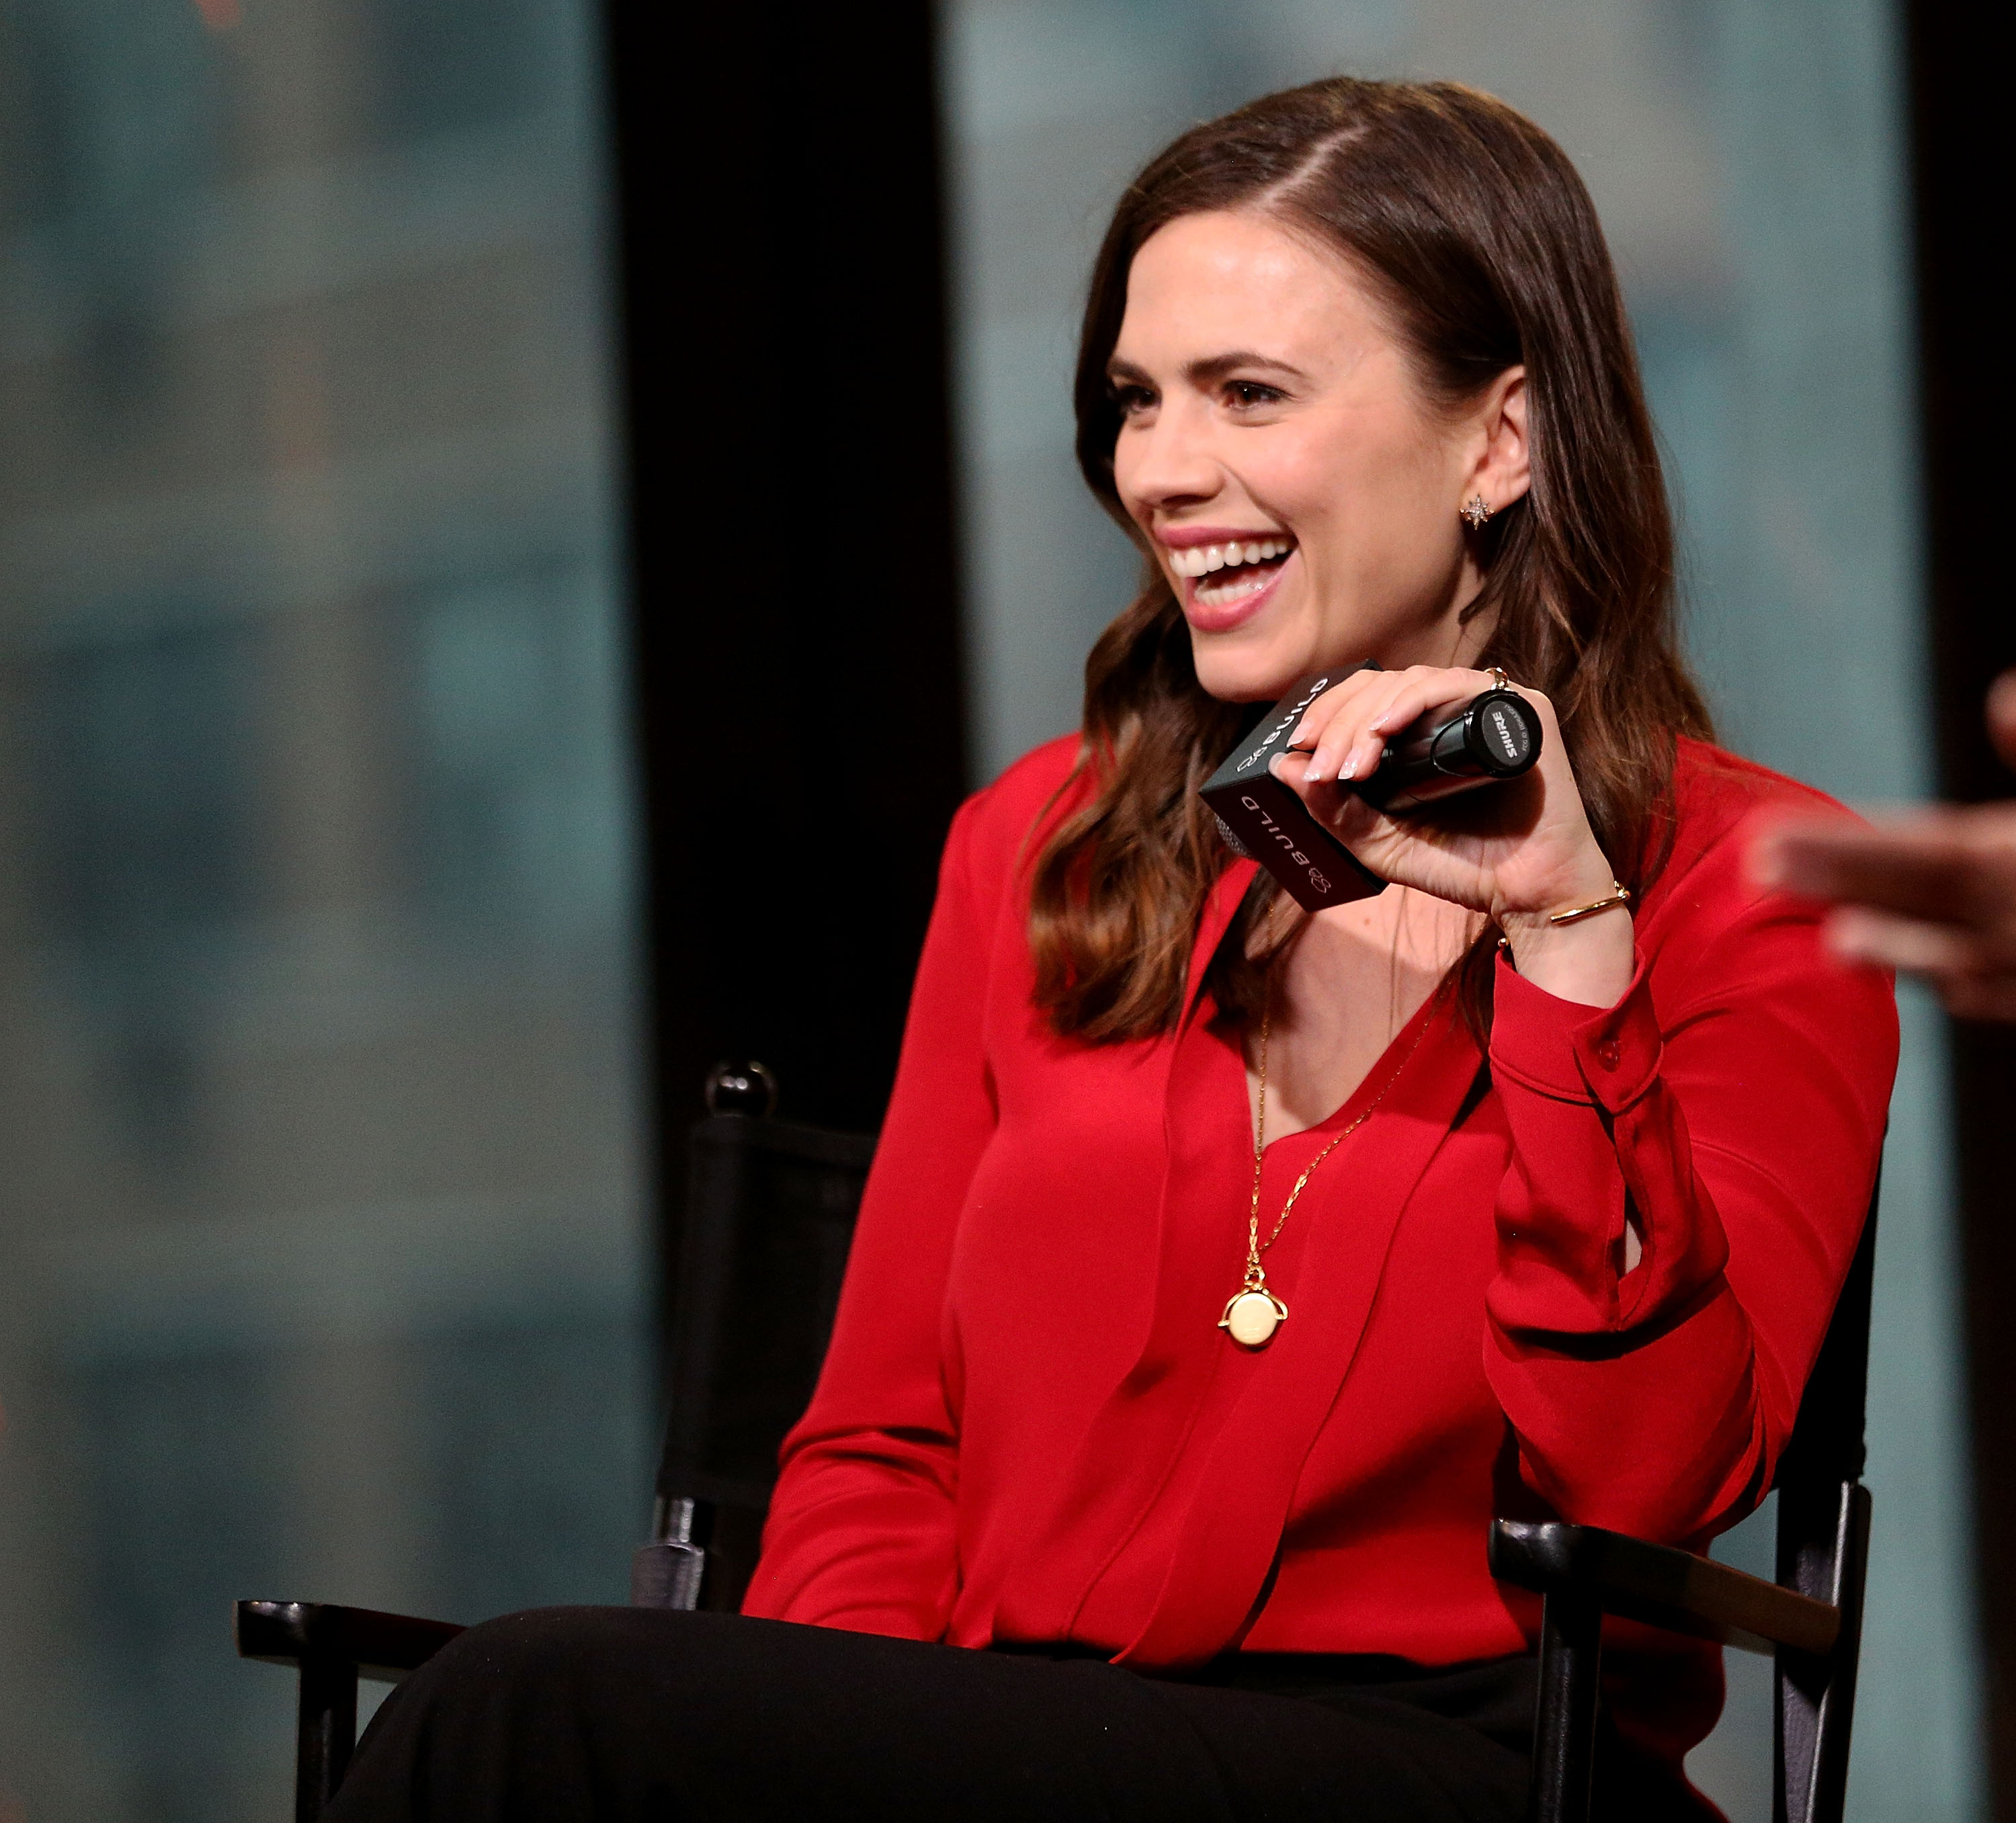 NYCC 2016: Hayley Atwell Returning As Agent Carter - In Cartoon Form